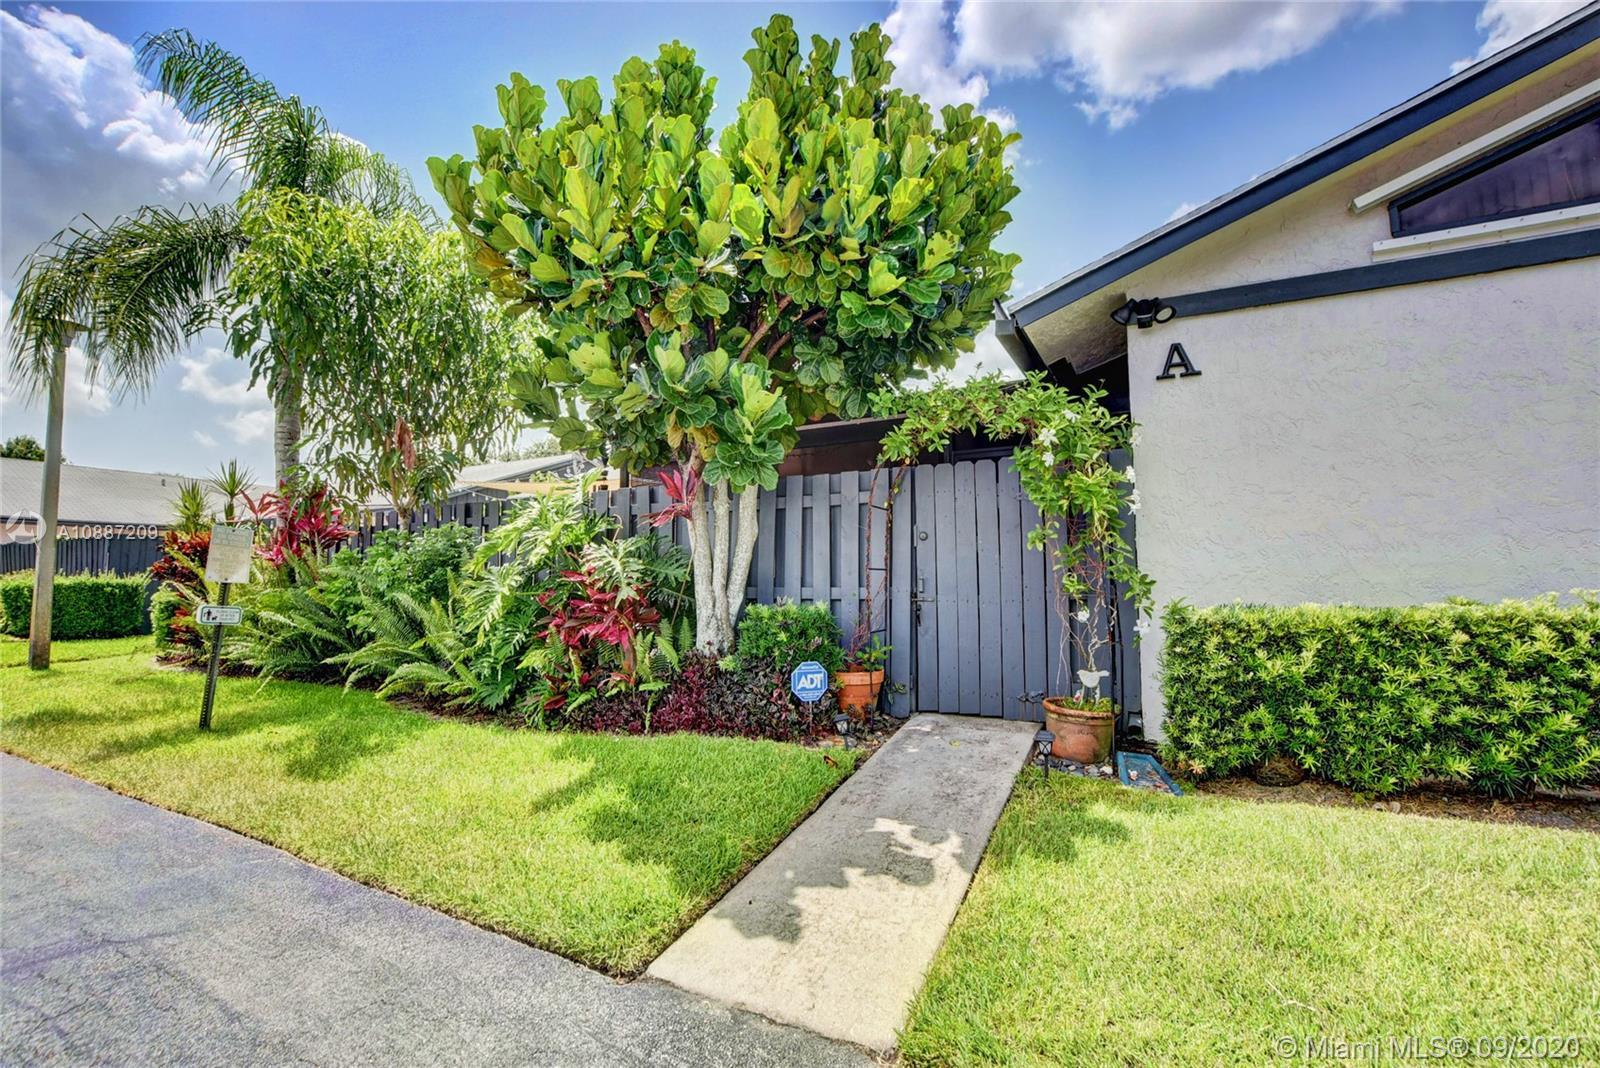 Fee Simple Villa conveniently located in West Palm Beach.  This light and bright open-concept patio